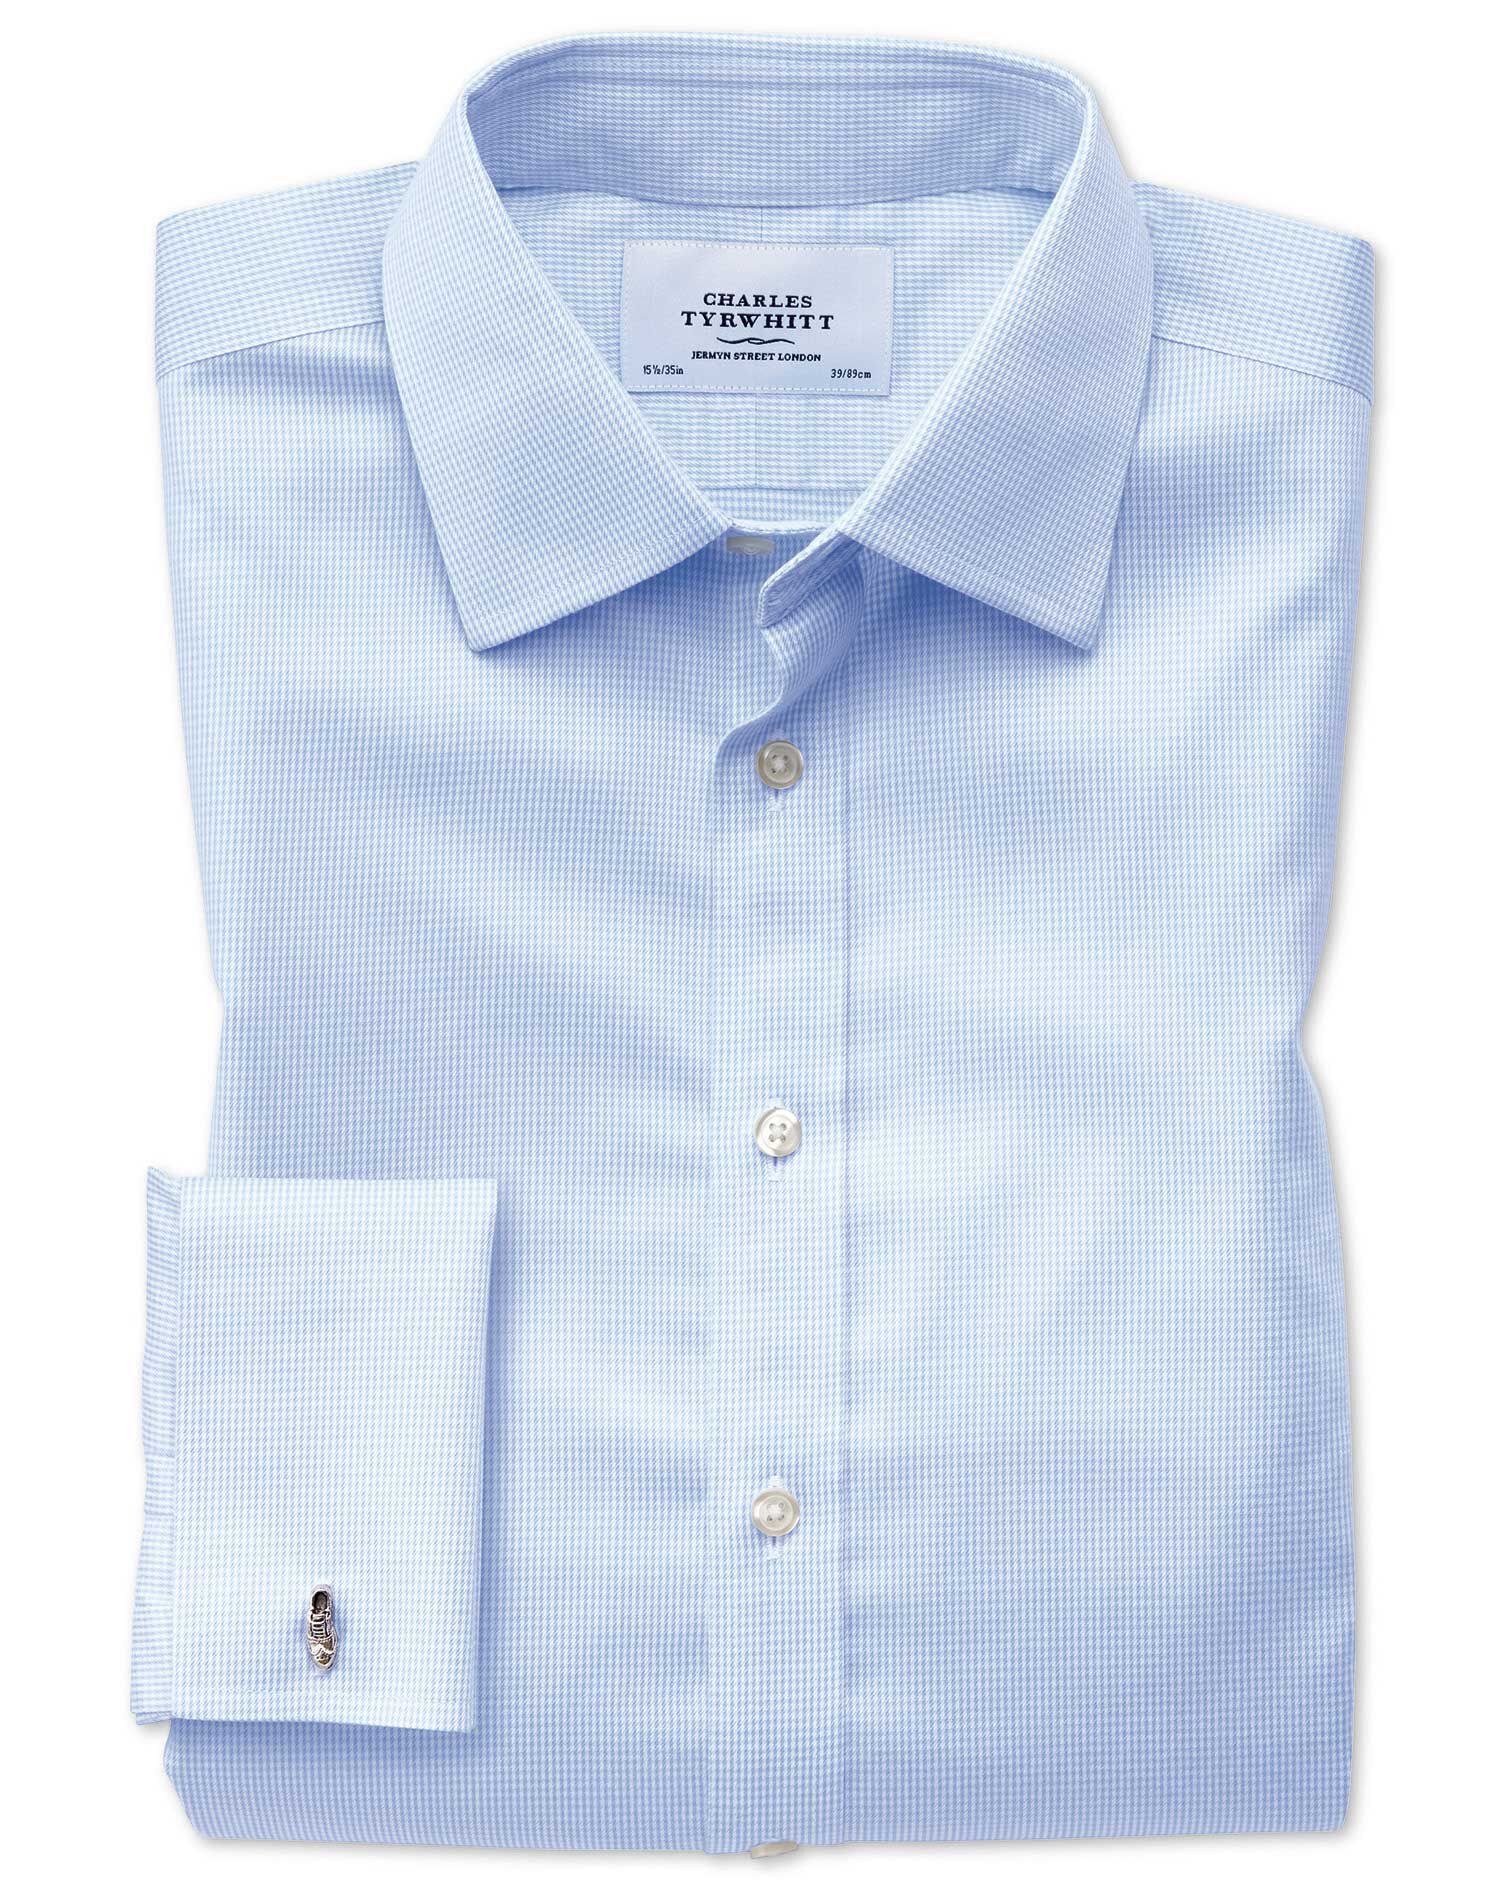 Extra Slim Fit Non-Iron Puppytooth Sky Blue Cotton Formal Shirt Single Cuff Size 15.5/32 by Charles